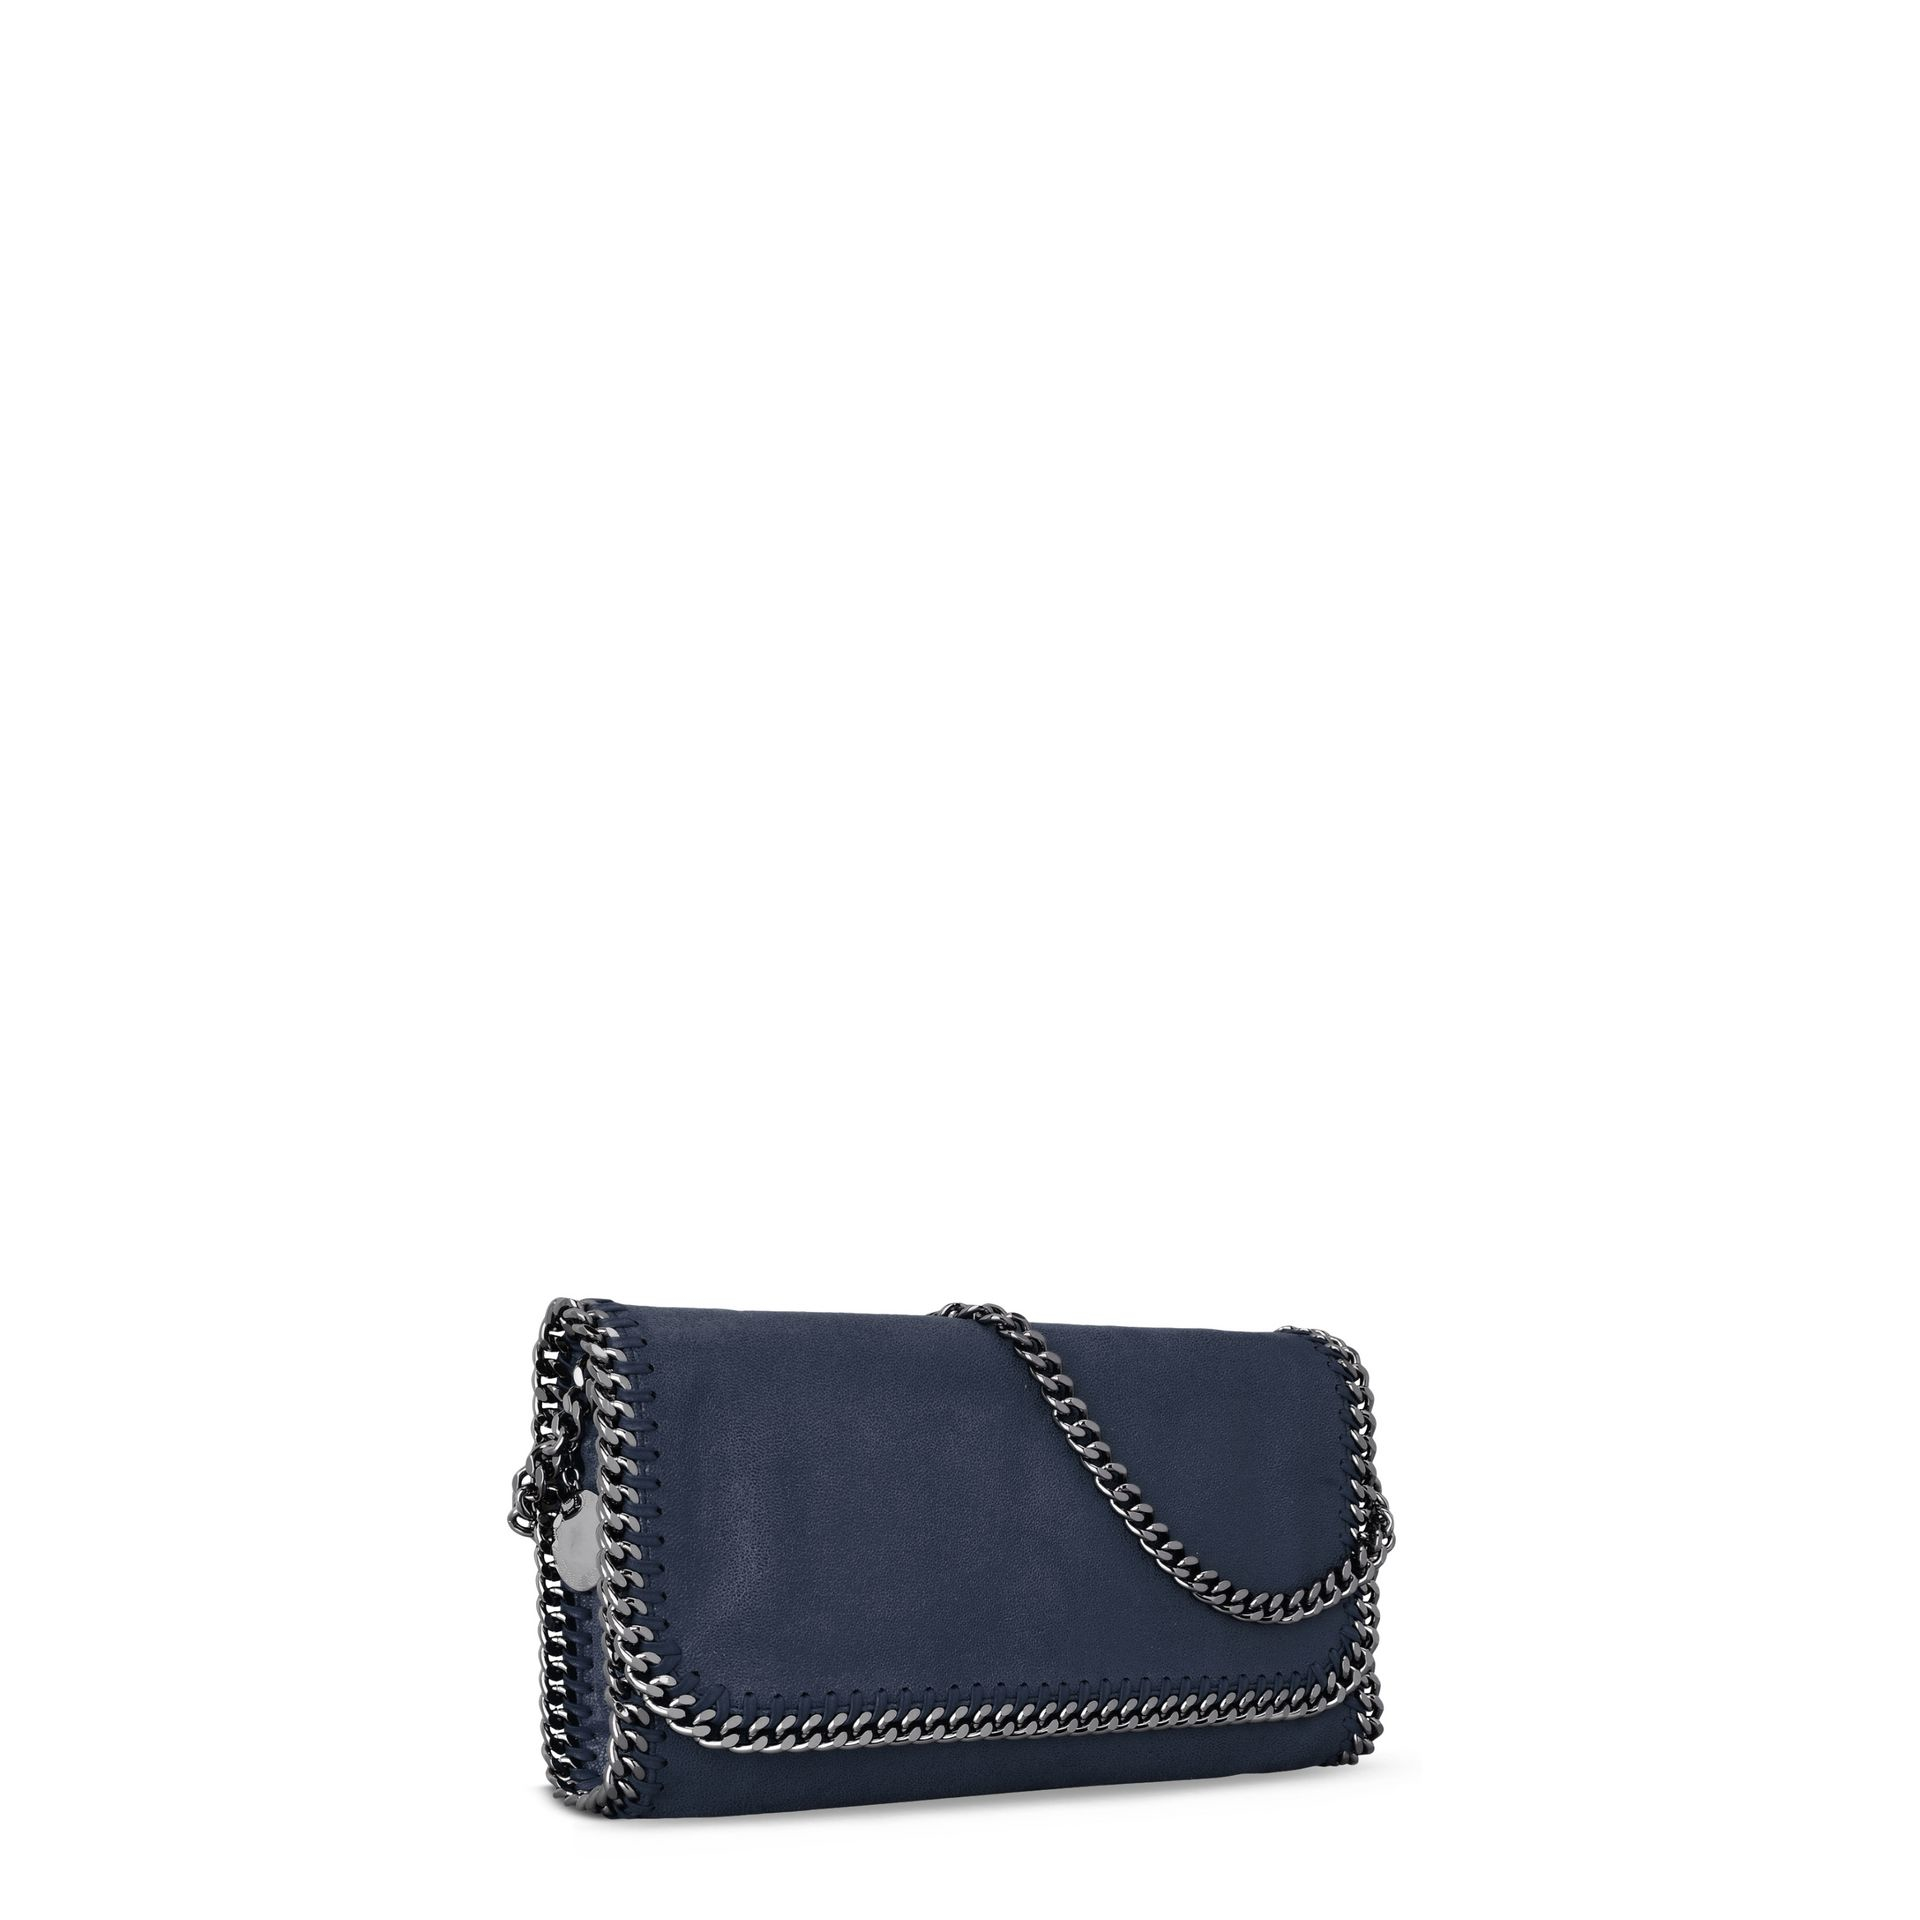 8d57840394 Lyst - Stella McCartney Navy Falabella Shaggy Deer Shoulder Bag in Blue